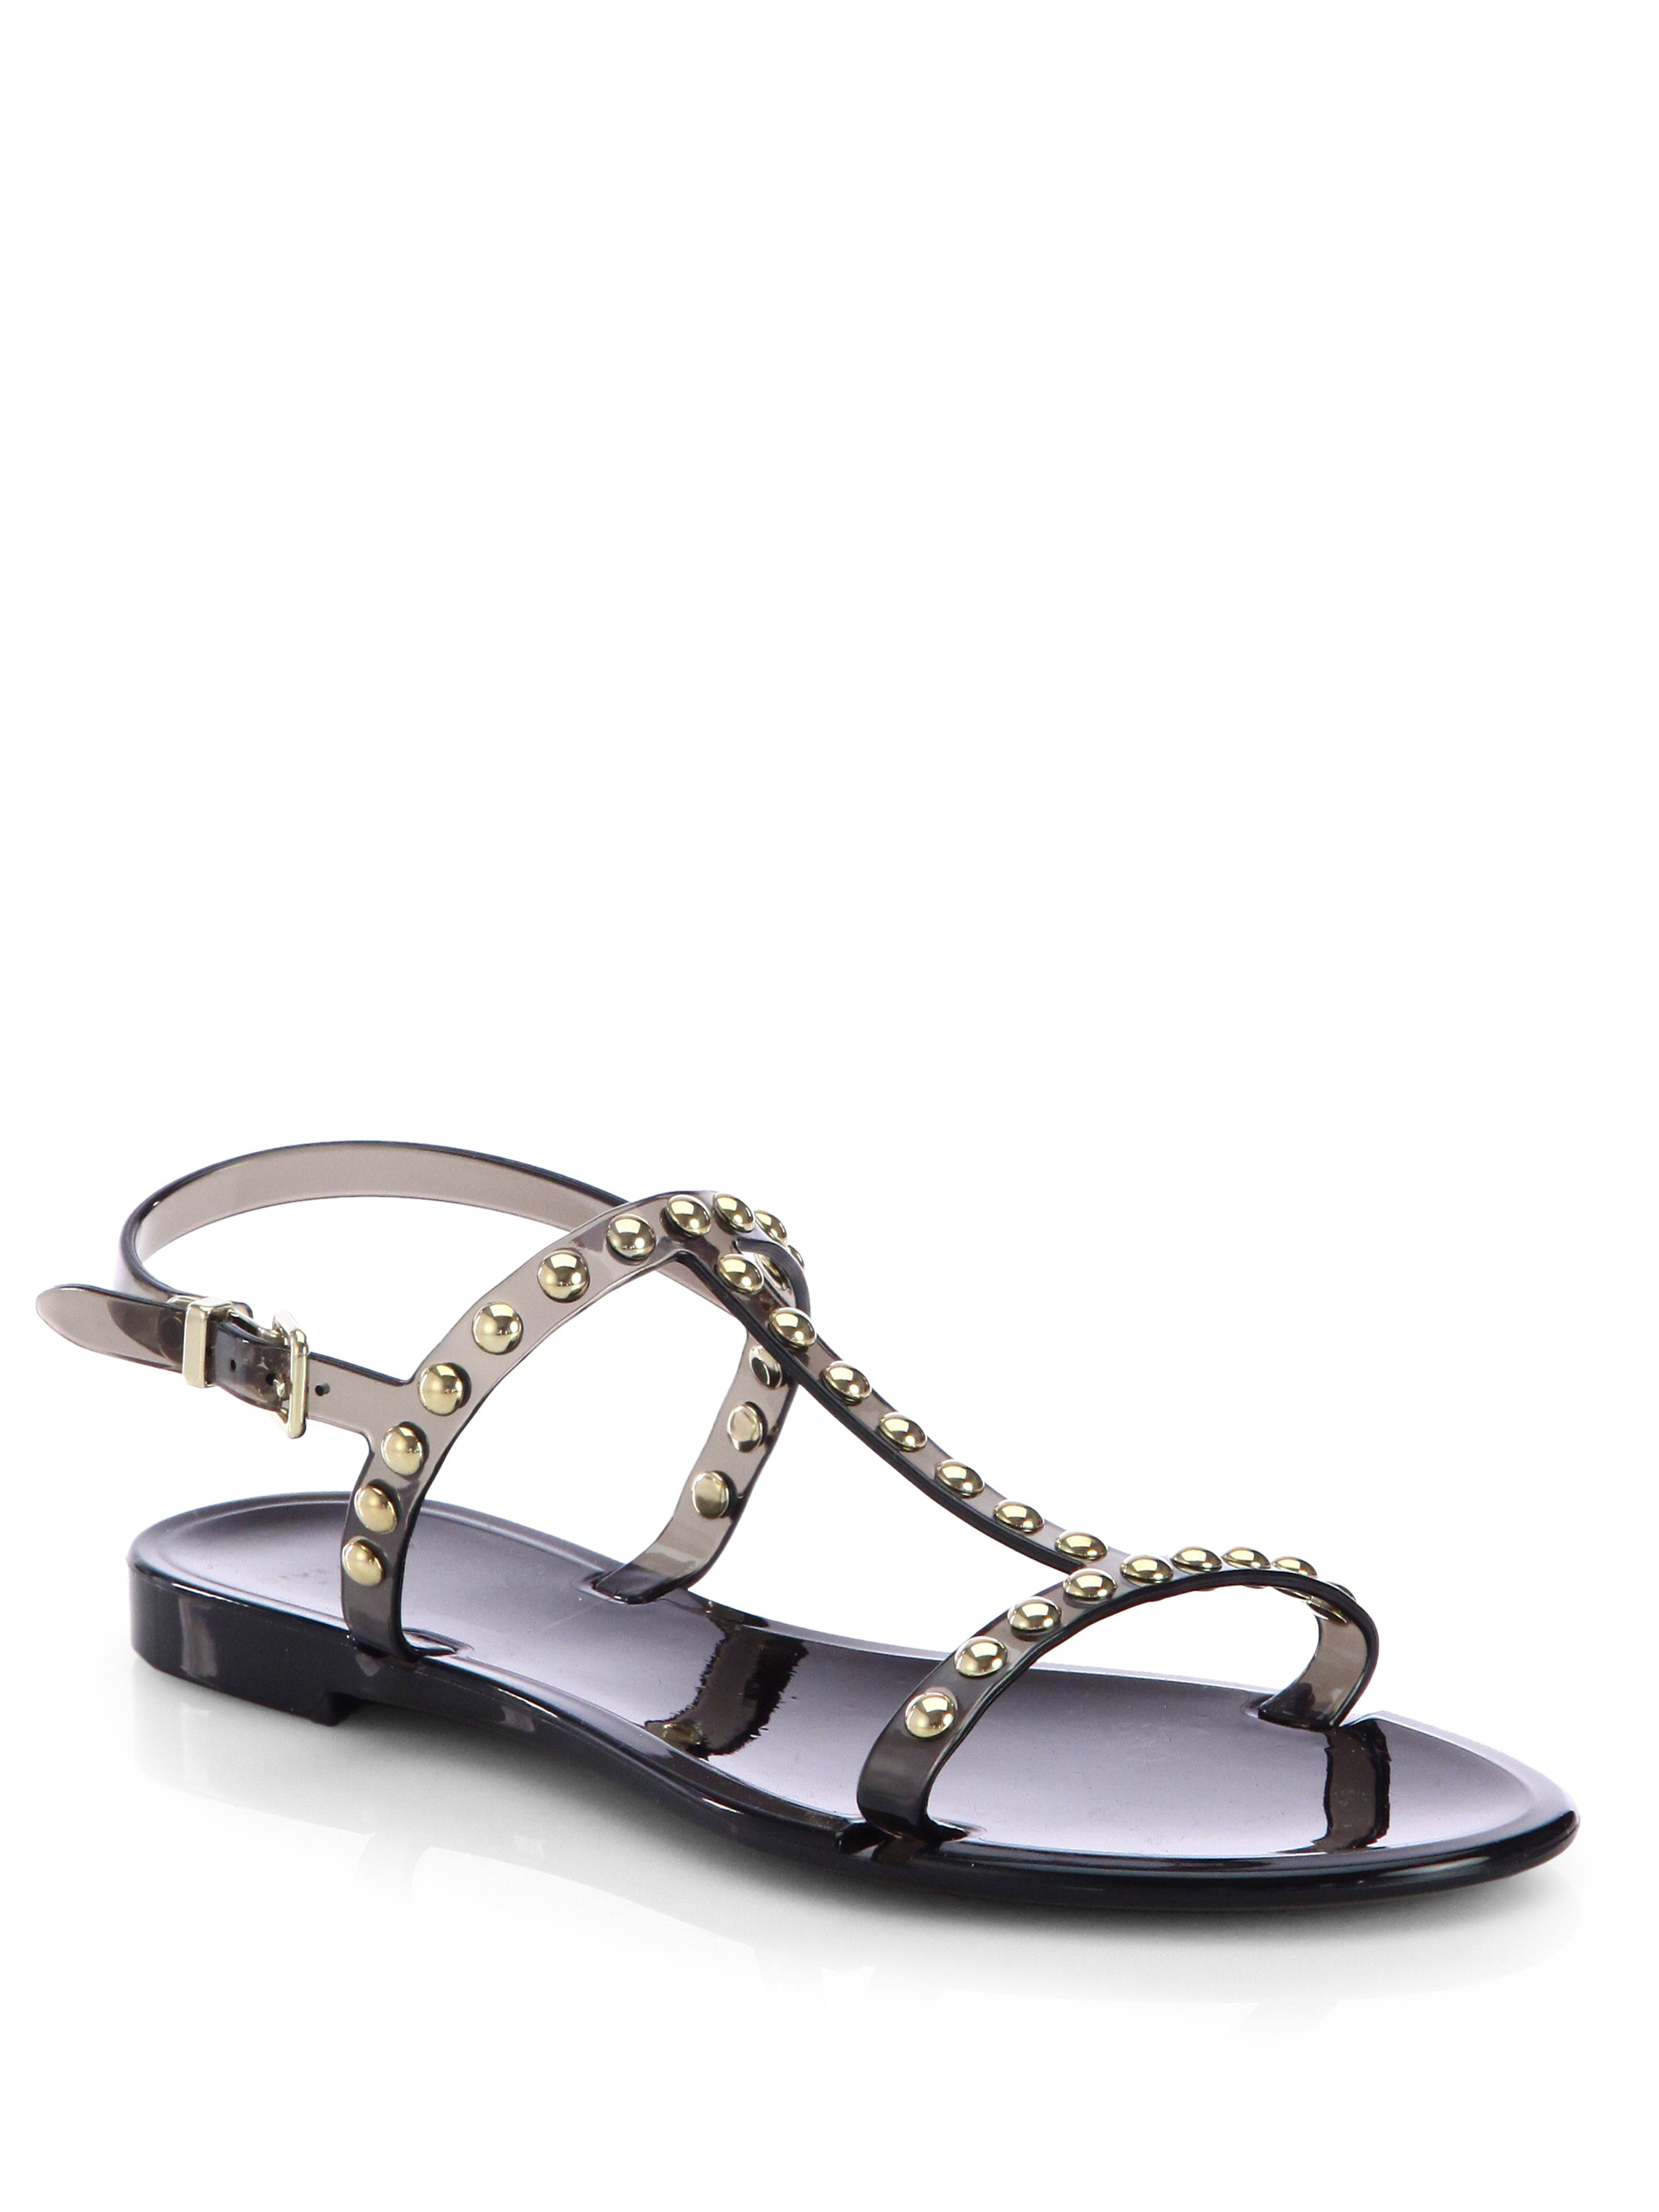 Givenchy Studded Jelly Sandals In Black Lyst